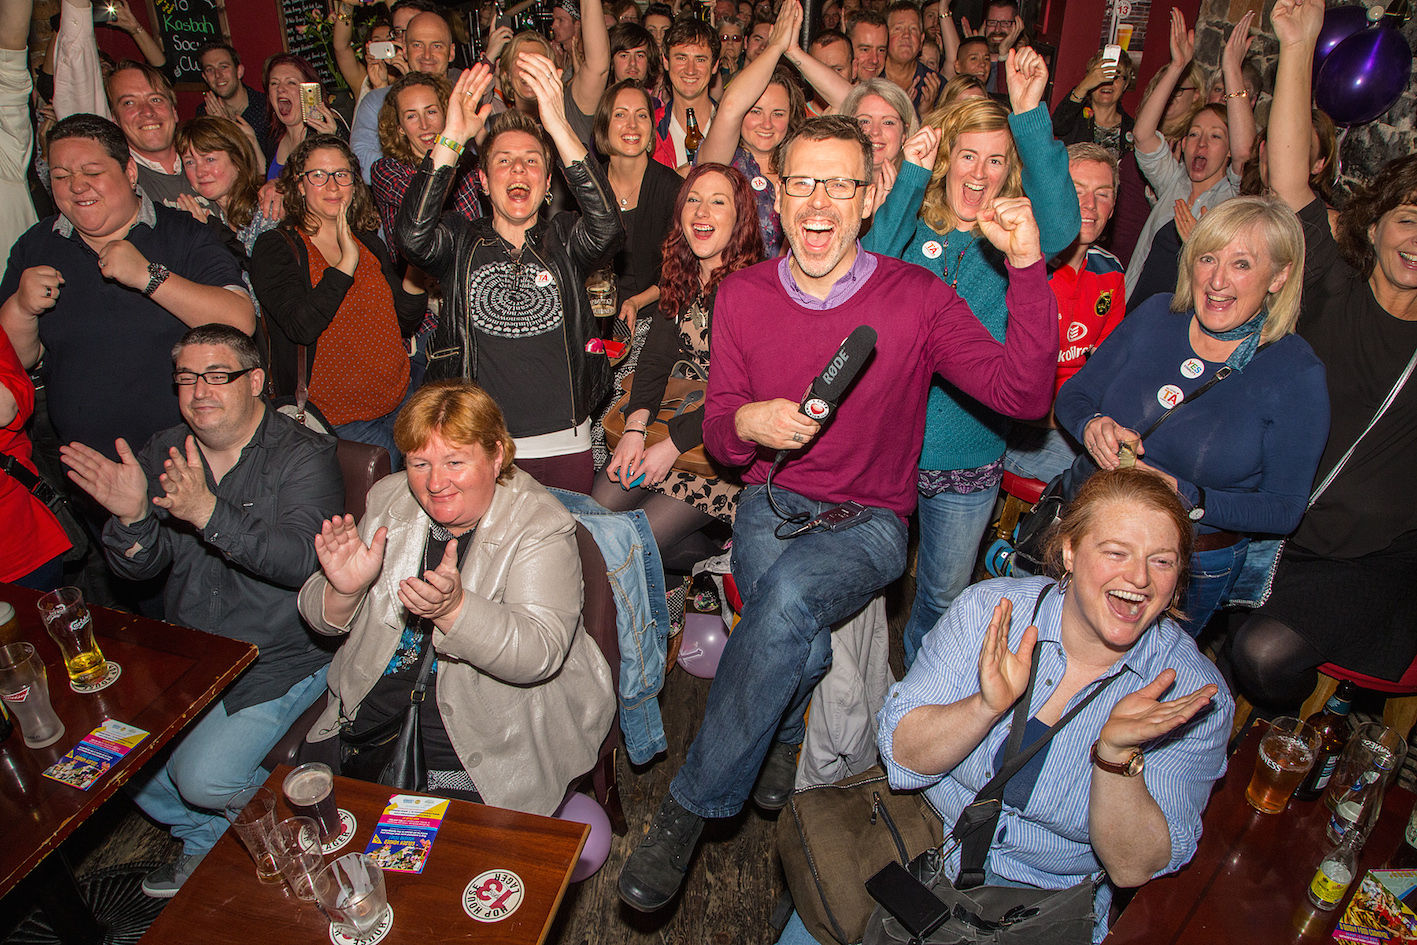 A look back at 2015 - Richards year loving Limerick